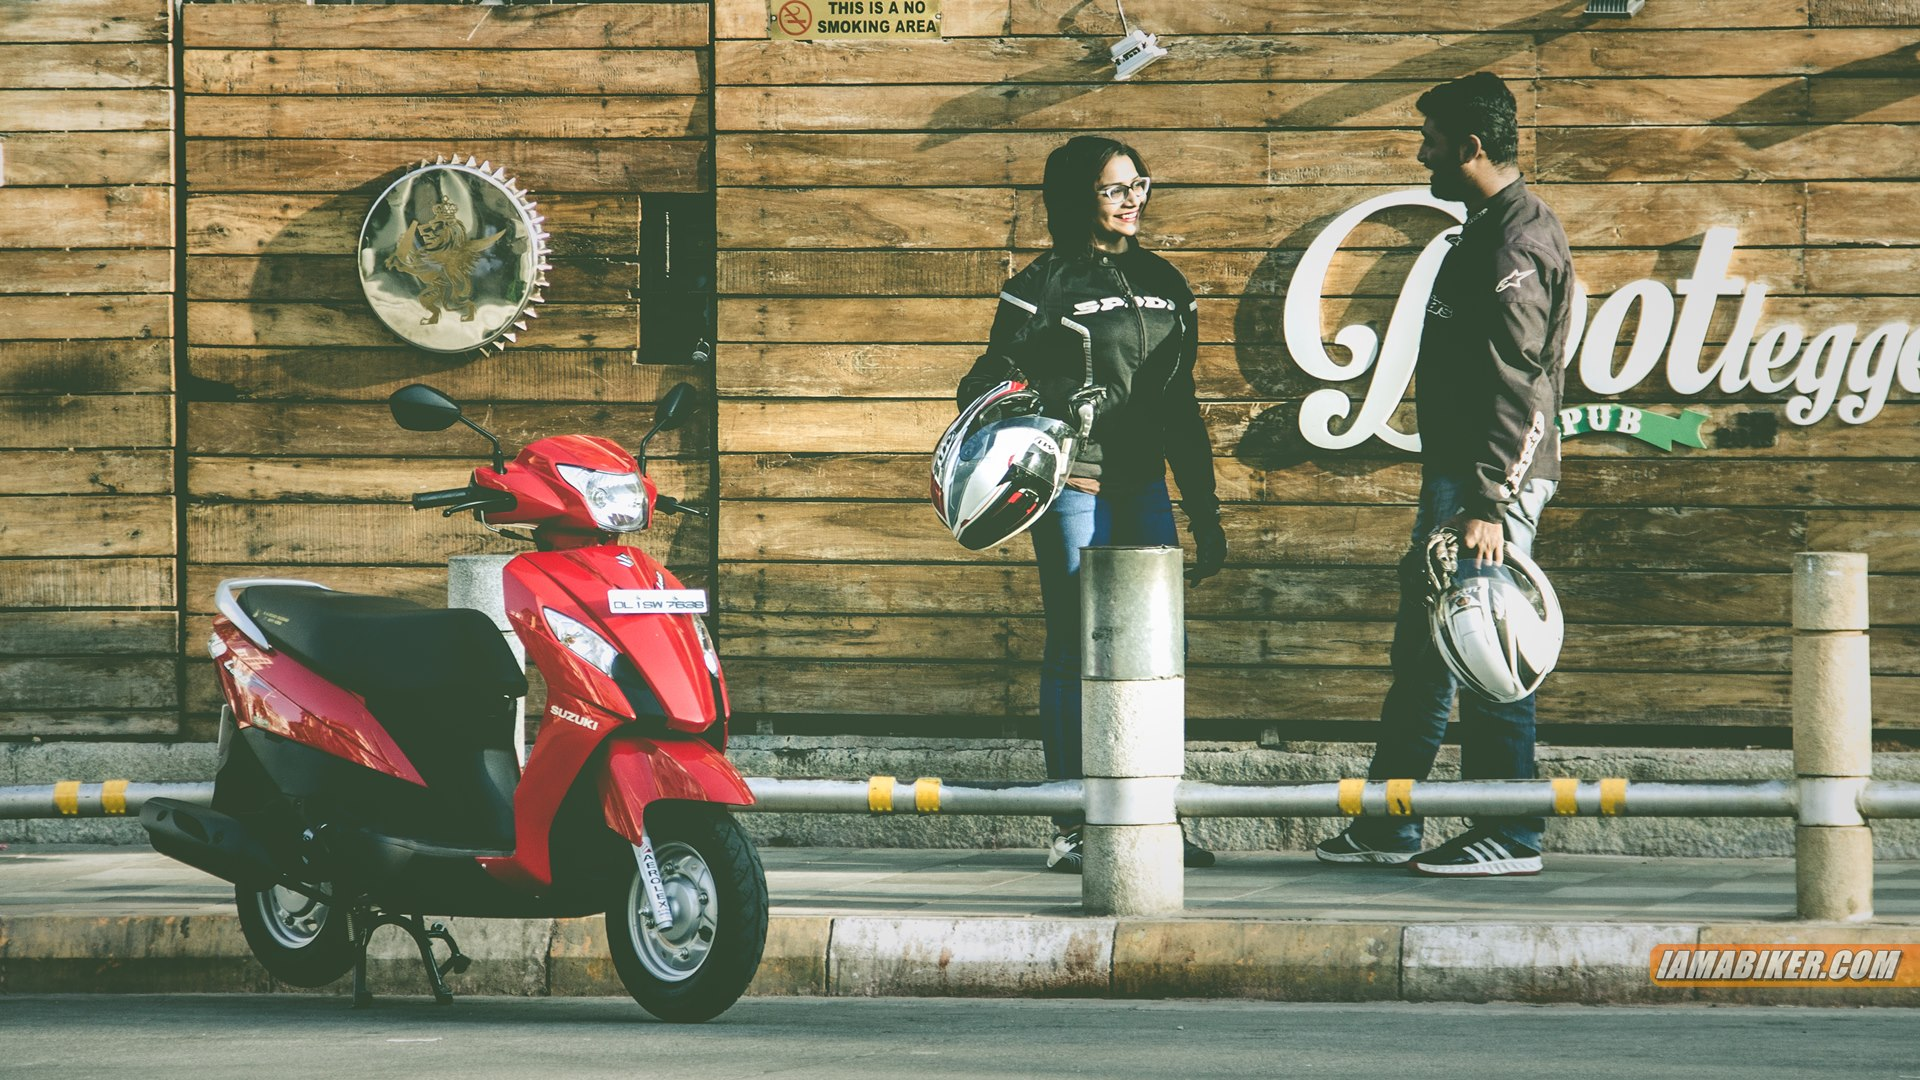 Suzuki Lets scooter review